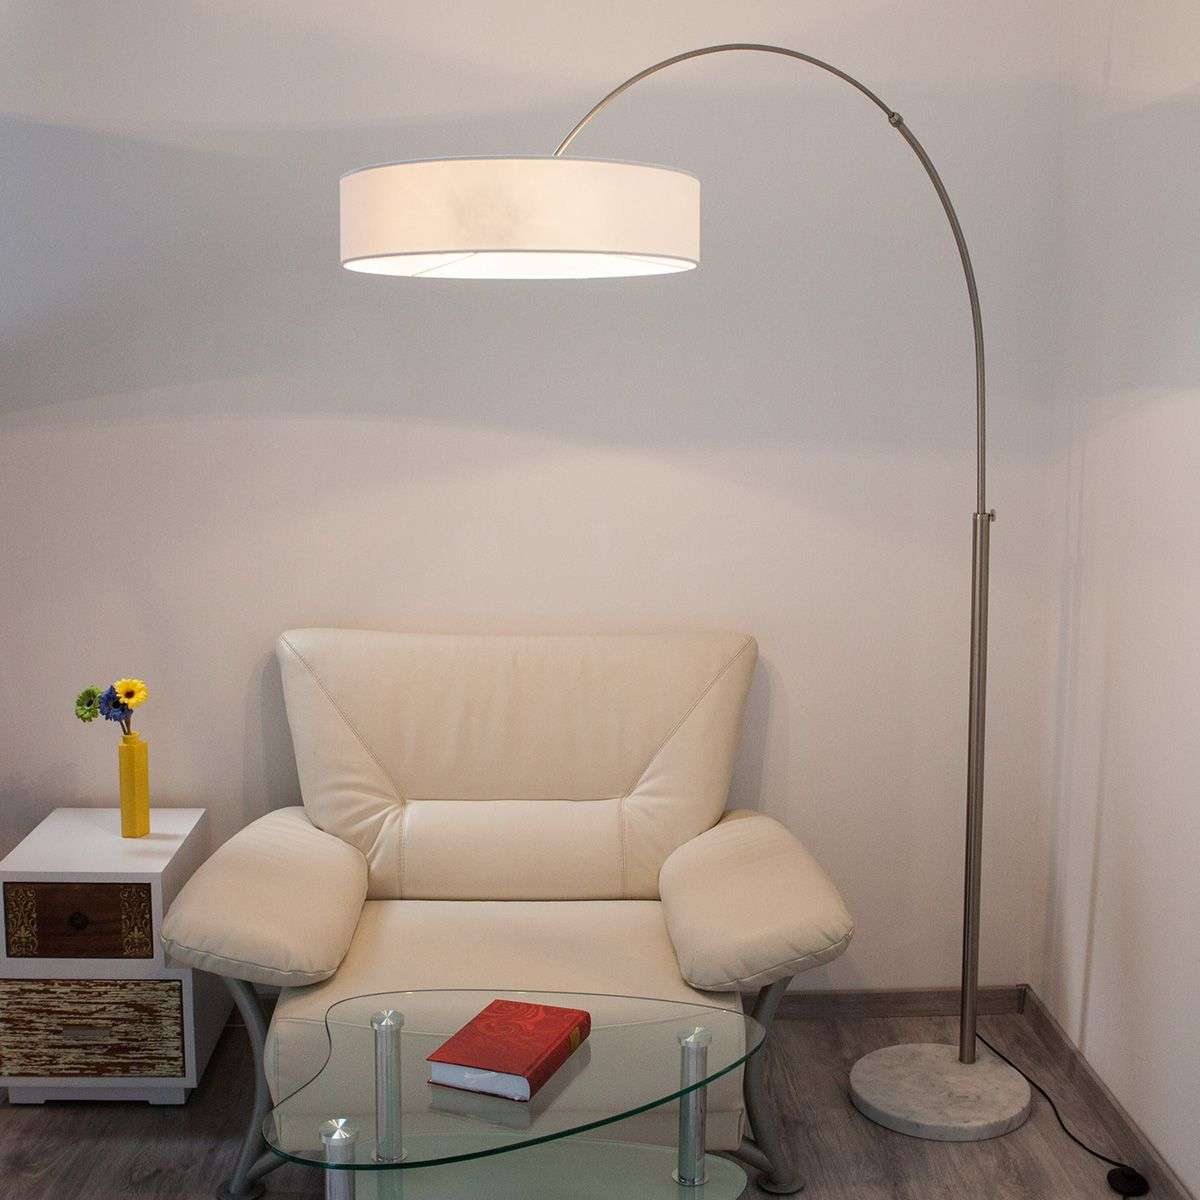 White Shing fabric floor lamp-9620142-31